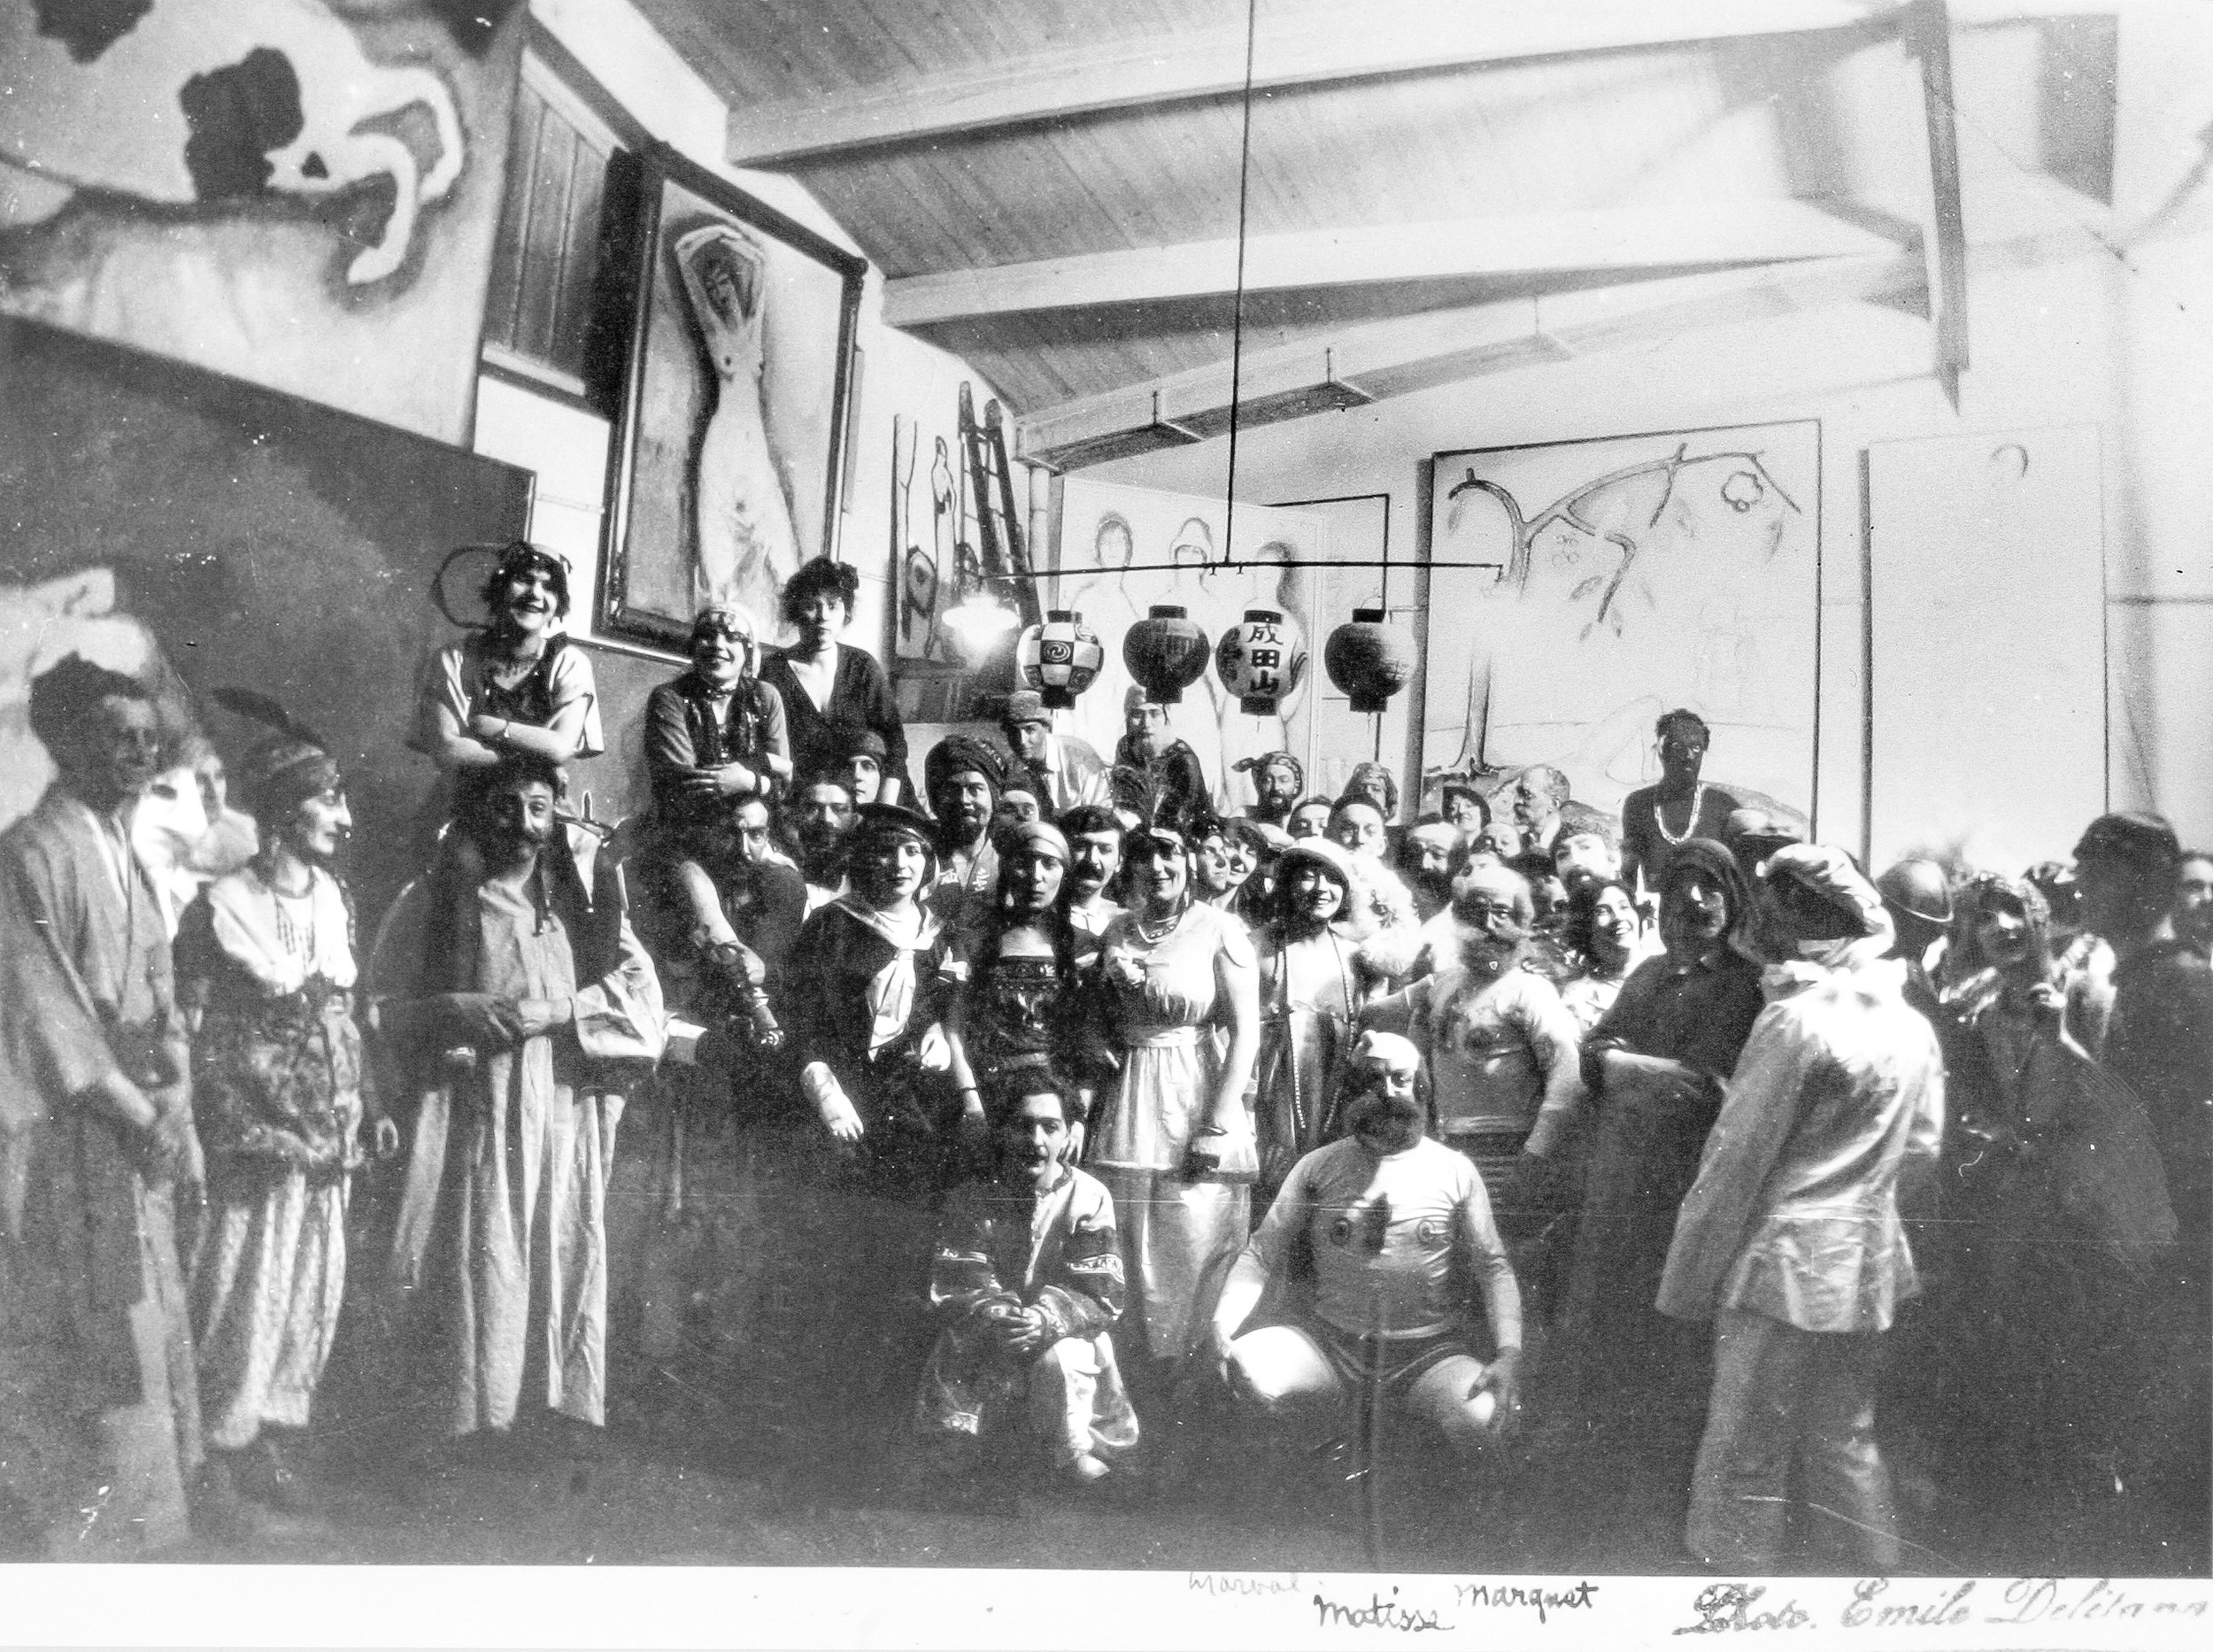 Van Dongen bal, April 1914. Marval at the center next to Matisse and Marquet.